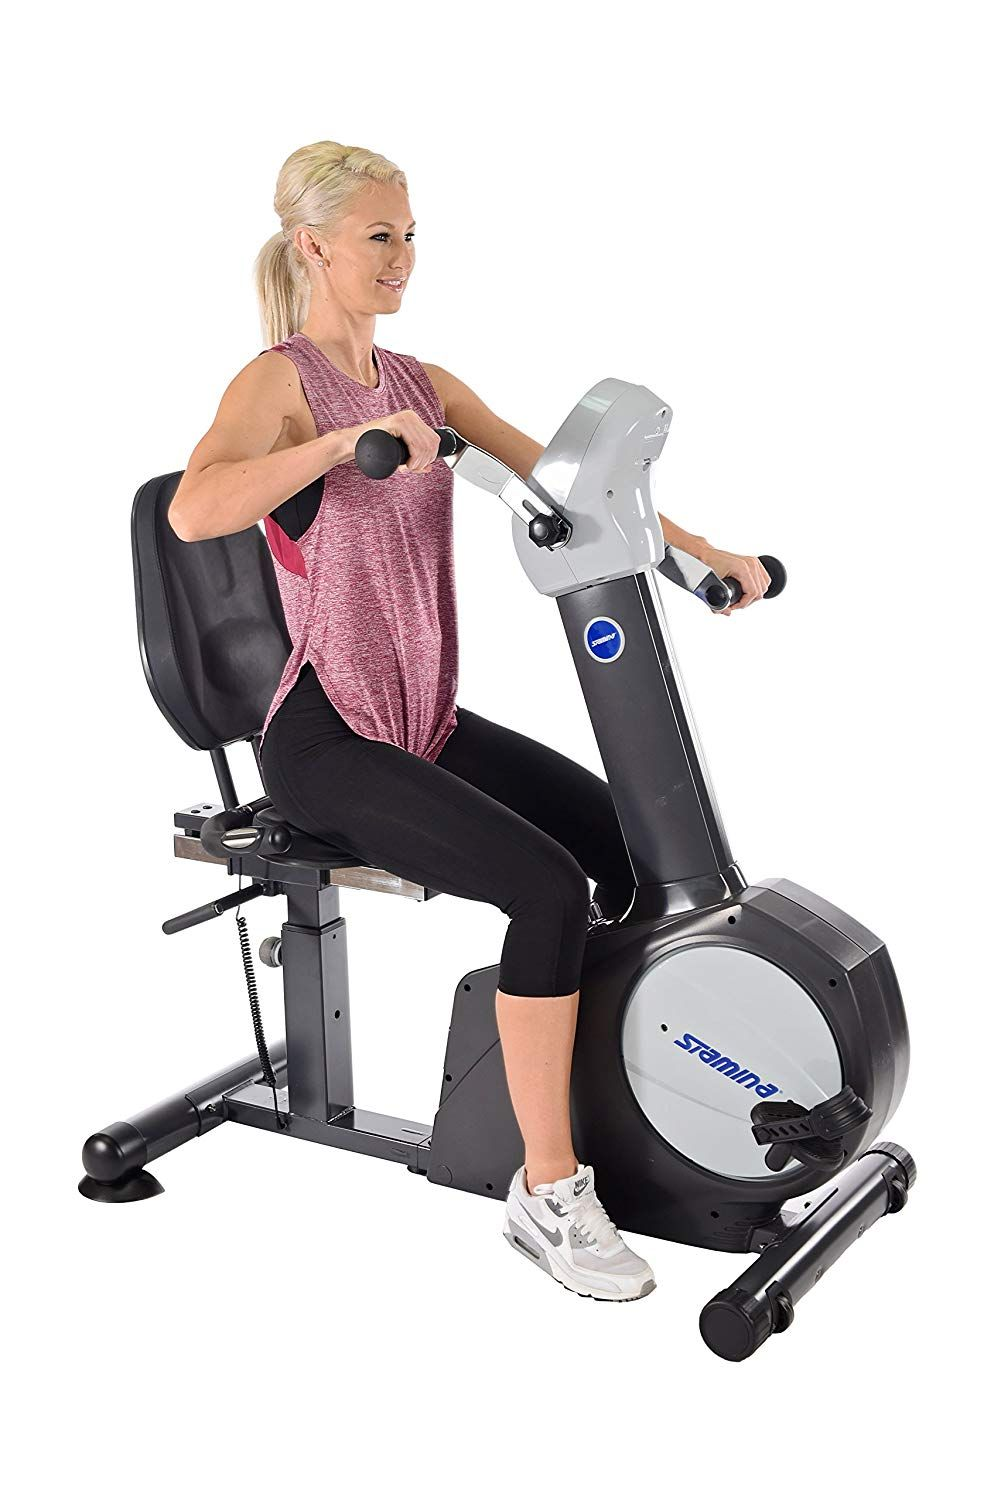 Best Recumbent Exercise Bike Recumbent Exercise Bike Schwinn 270 Recumbent Bike Schwinn Recumben Biking Workout Recumbent Bike Workout Best Exercise Bike